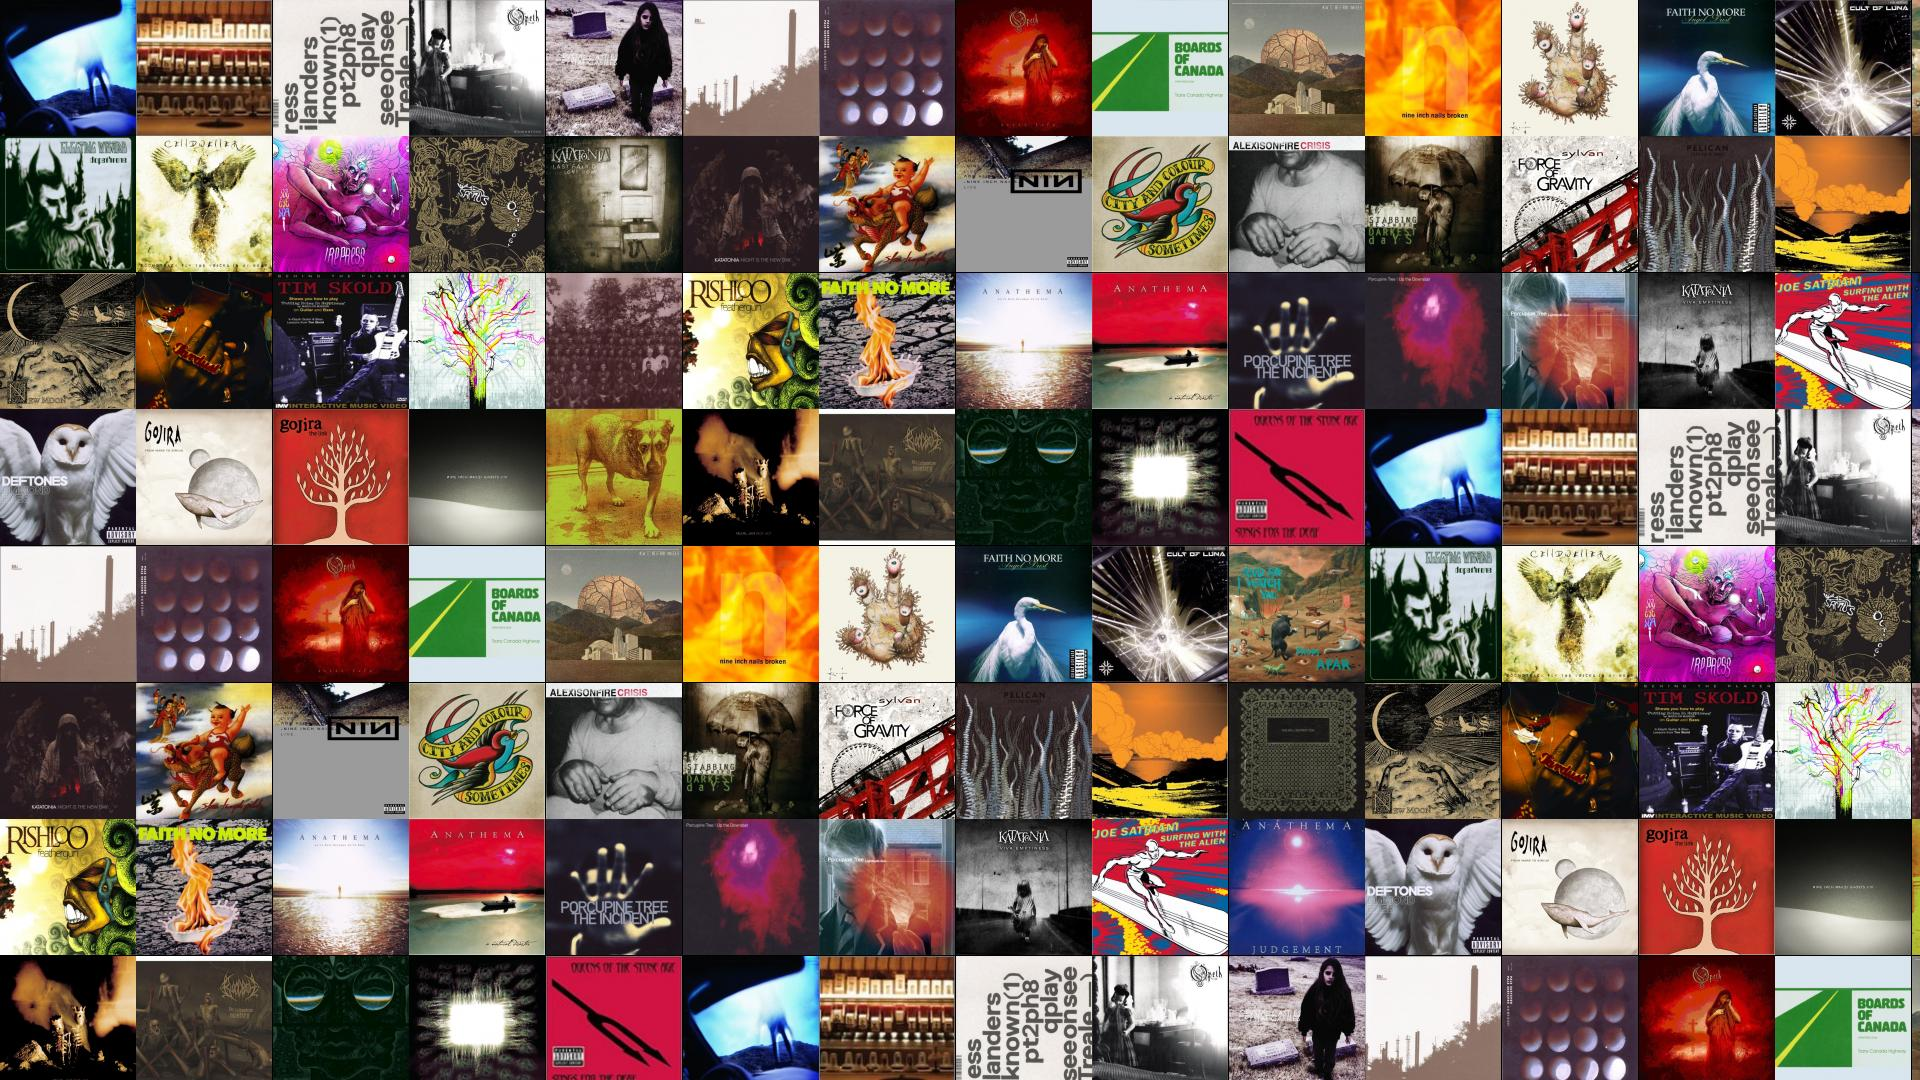 Pink Floyd Wallpaper Iphone 4 Download Music Collage Wallpaper Gallery